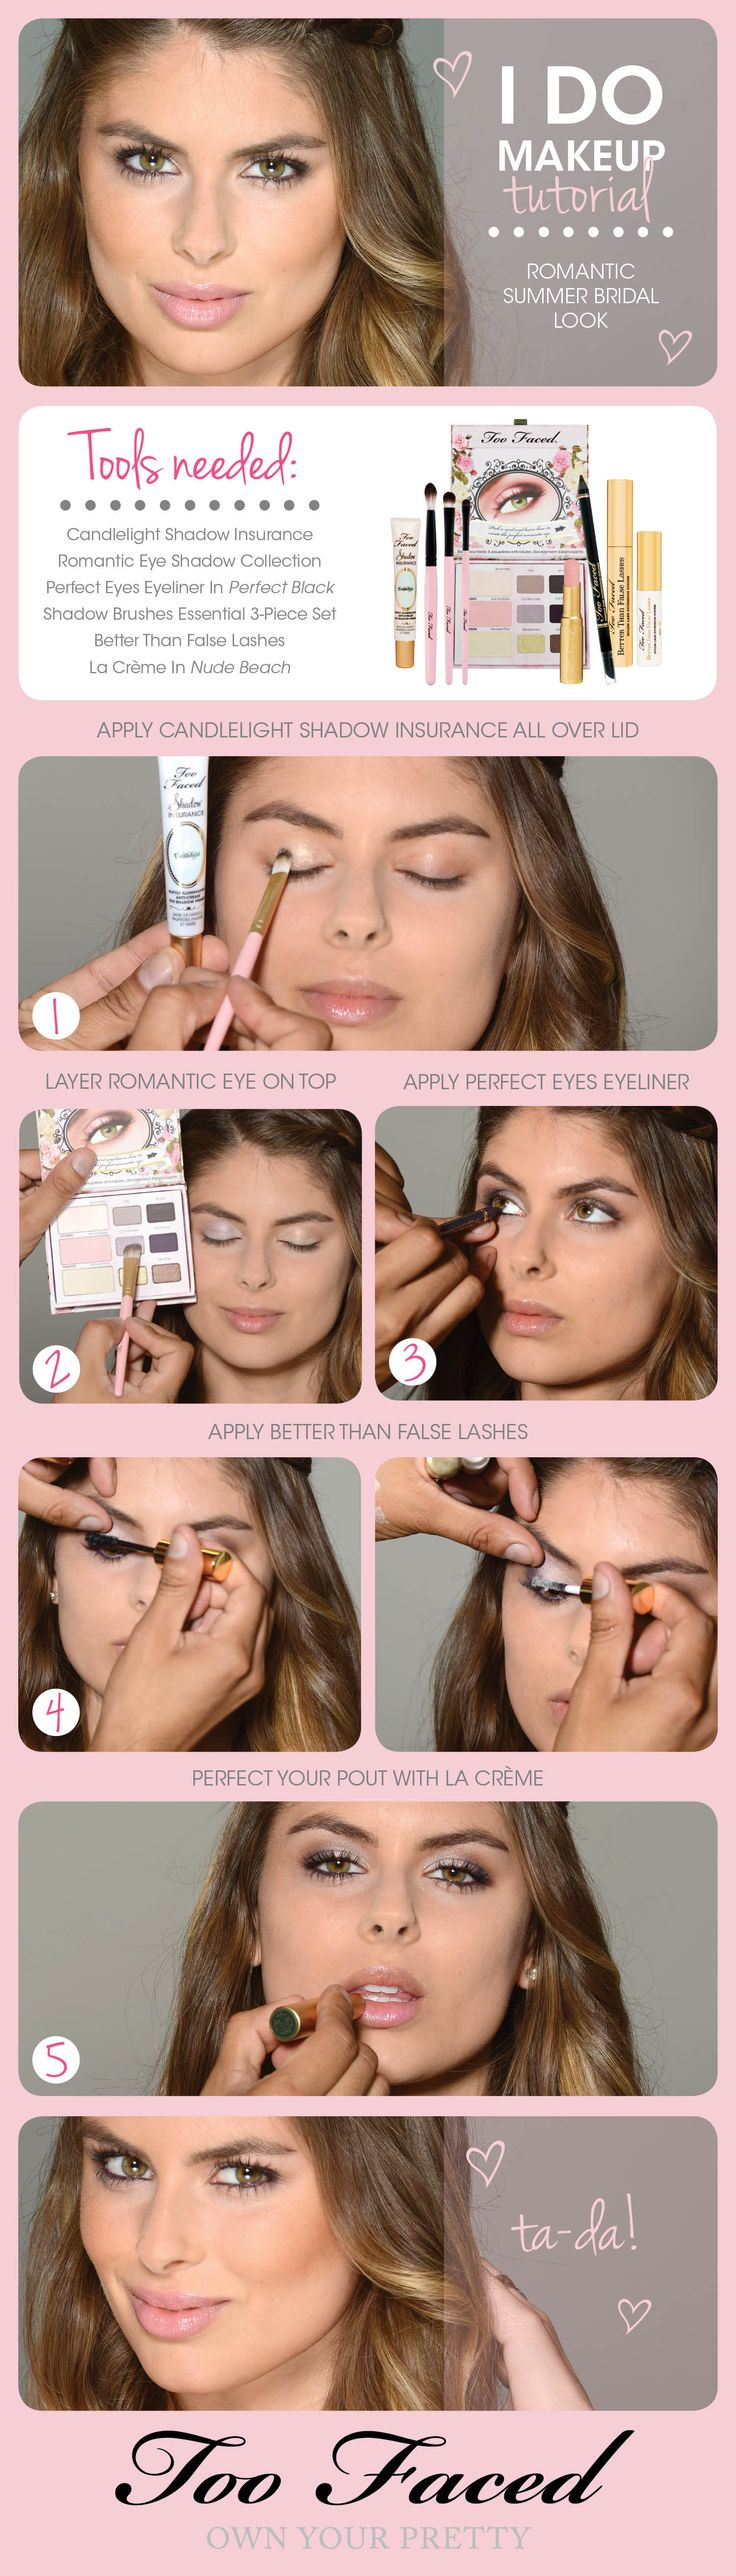 Wedding season is still in full swing and whether you plan to put a ring on it or just join the happy couple in celebration, you'll want a fab look. Try this easy step-by-step tutorial by the talented Daniel Chinchilla-Beauty Expert! ‪#Toofaced